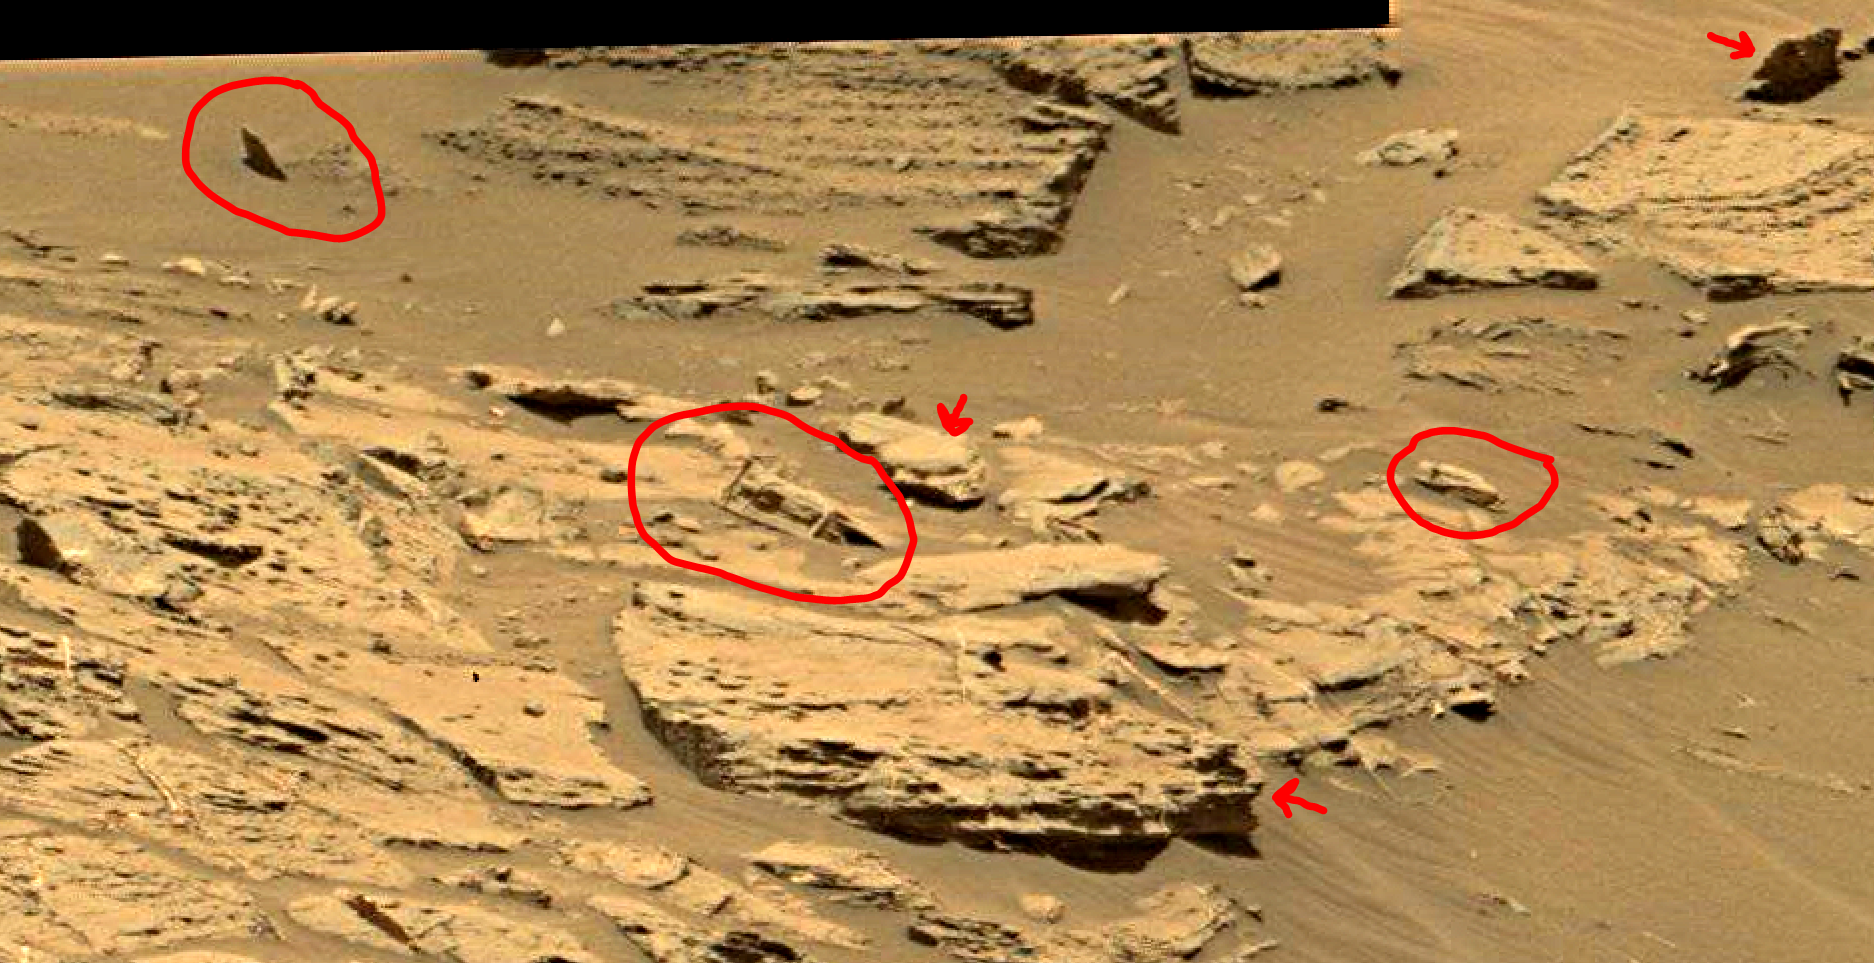 mars sol 1353 anomaly-artifacts 9a was life on mars